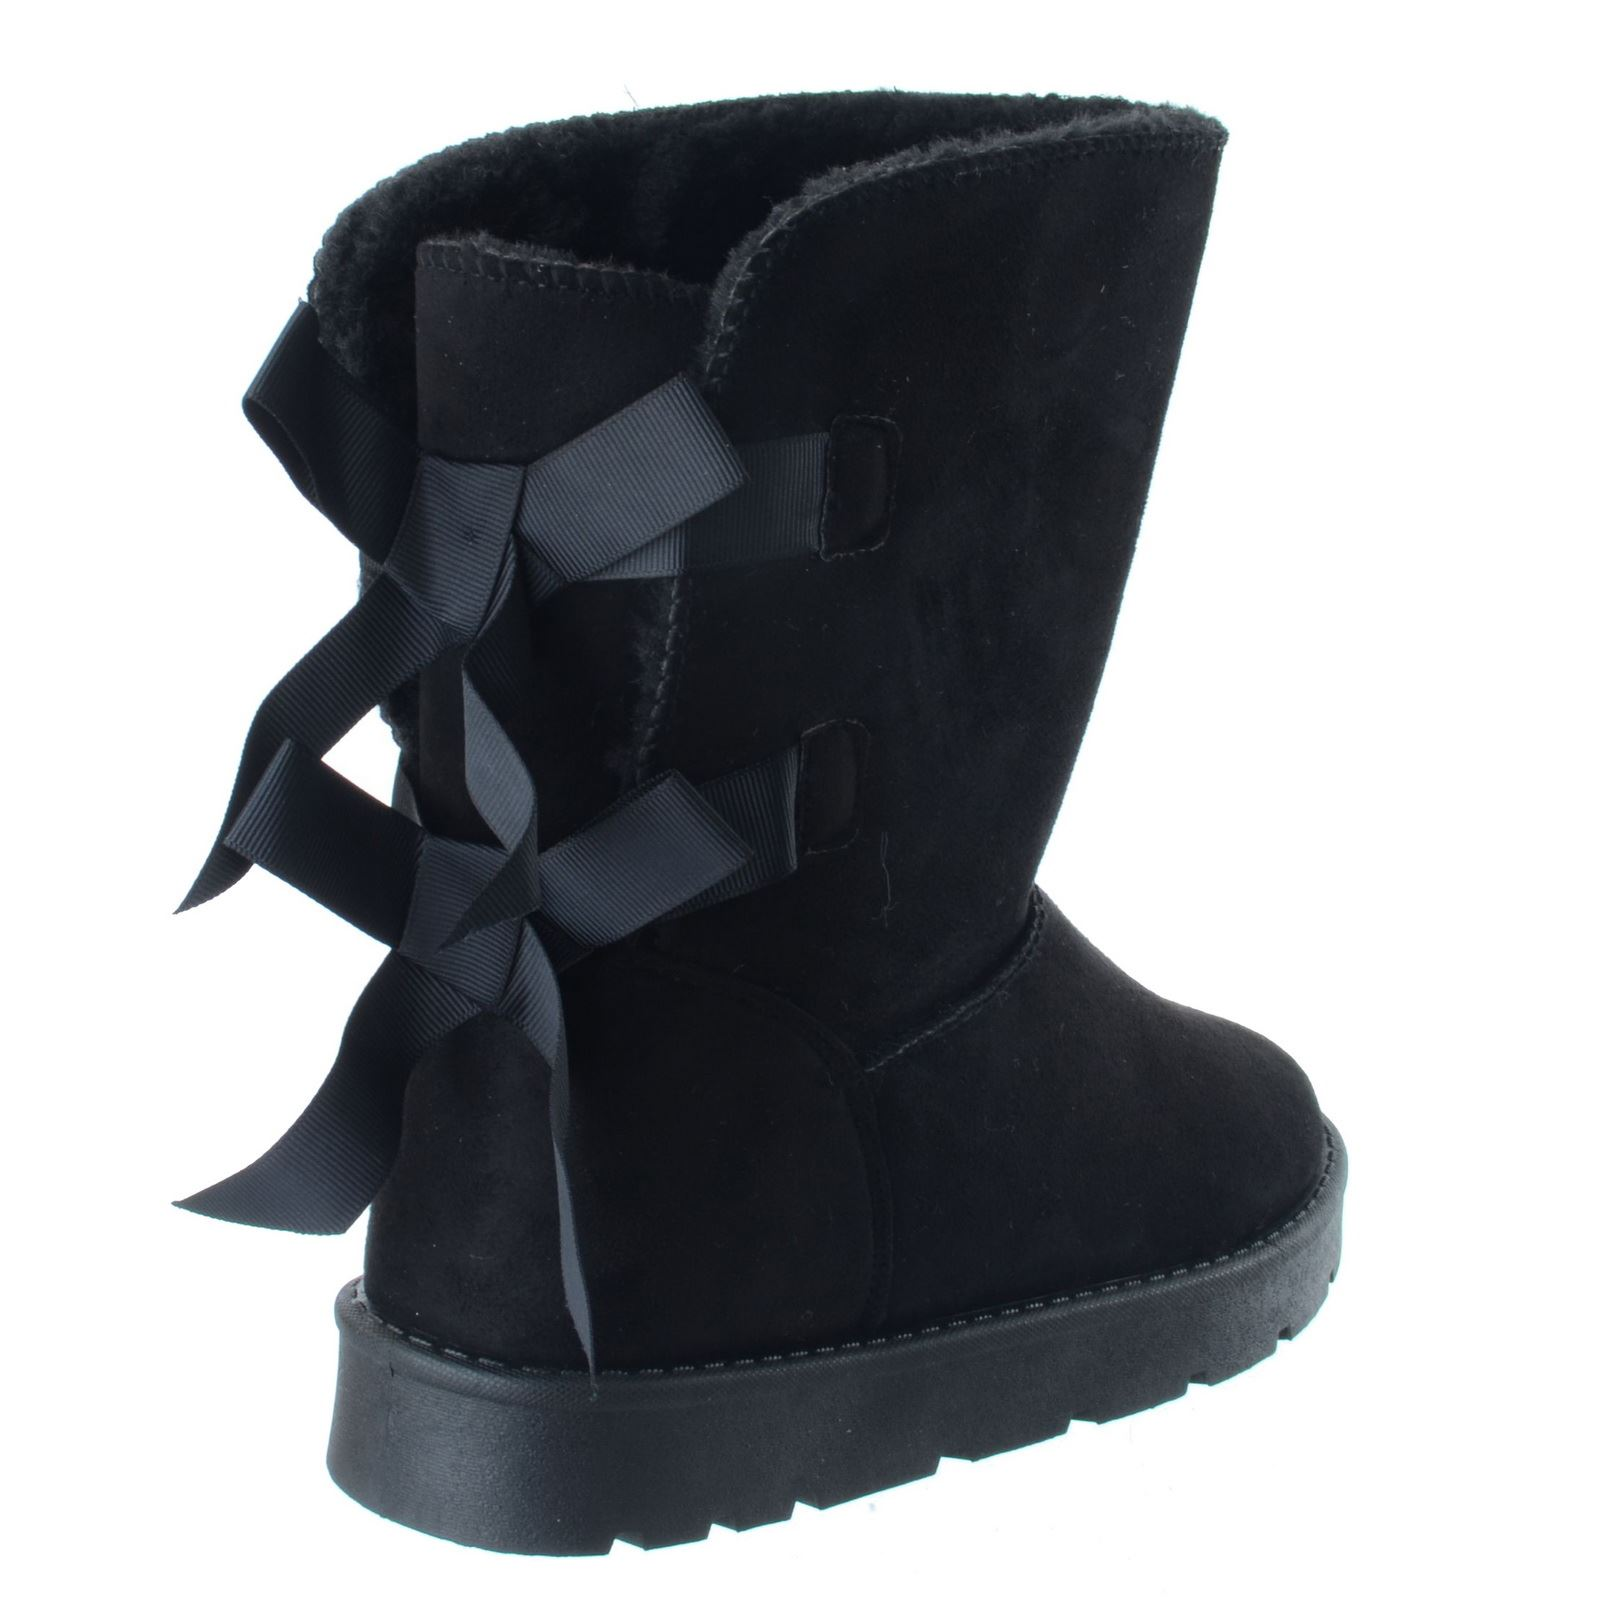 Ladies Winter Warm Winter Calf Flat Fur Lined Grip Sole Snugg Ankle Boots Size